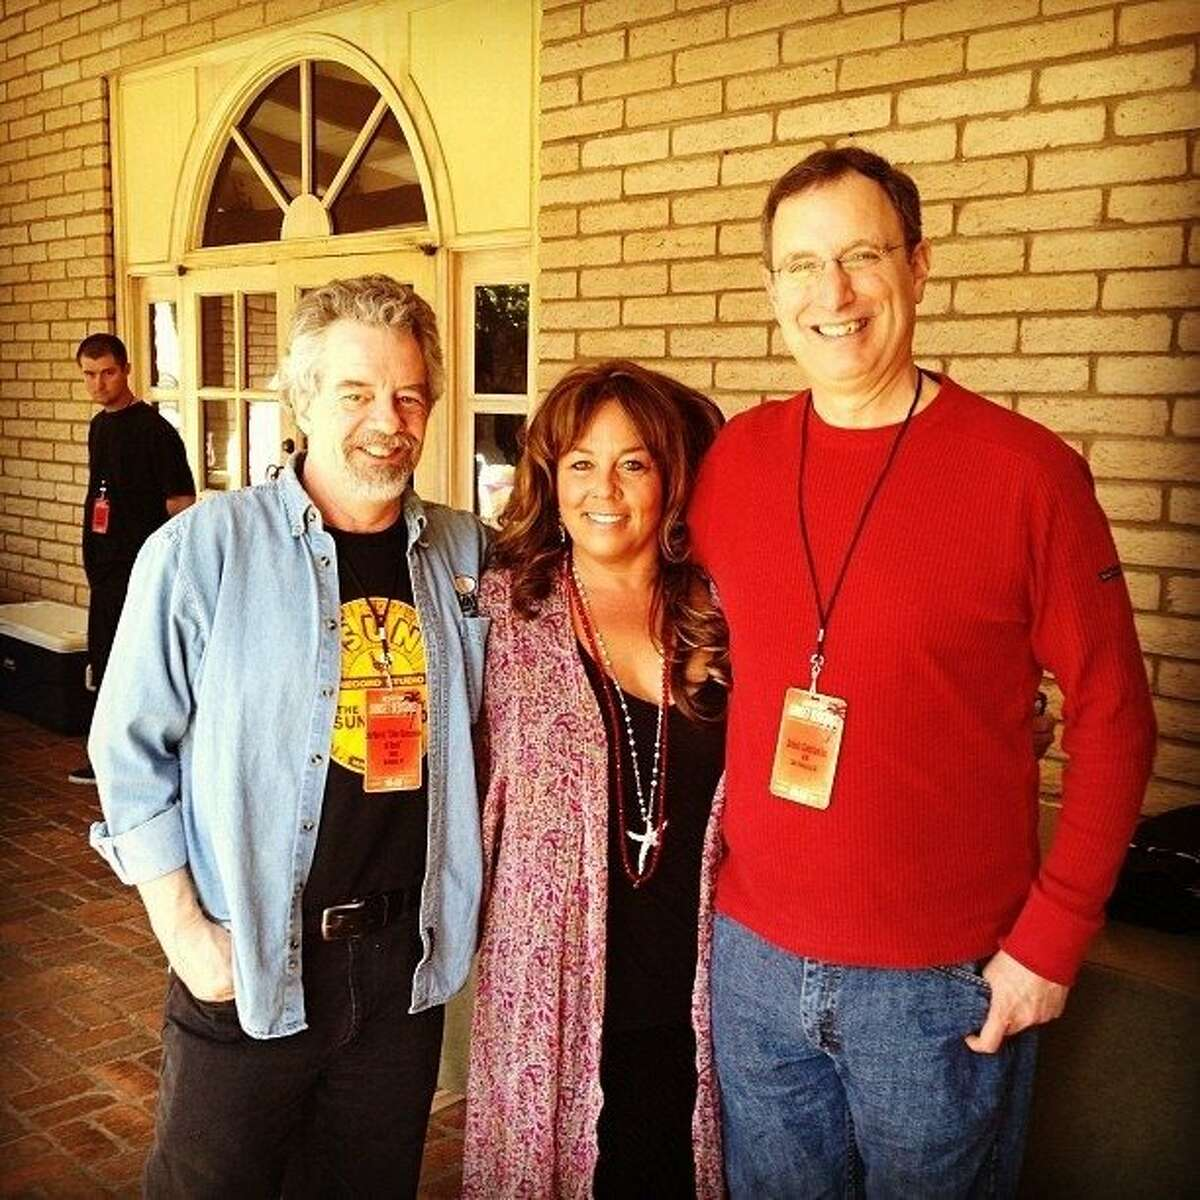 At Sunset Sessions, left to right: DJ Zeb Norris (formerly of KSJO, now with WNCS in Vermont), event producer Michele Clark, and Cumulus Media's Dennis Constantine.